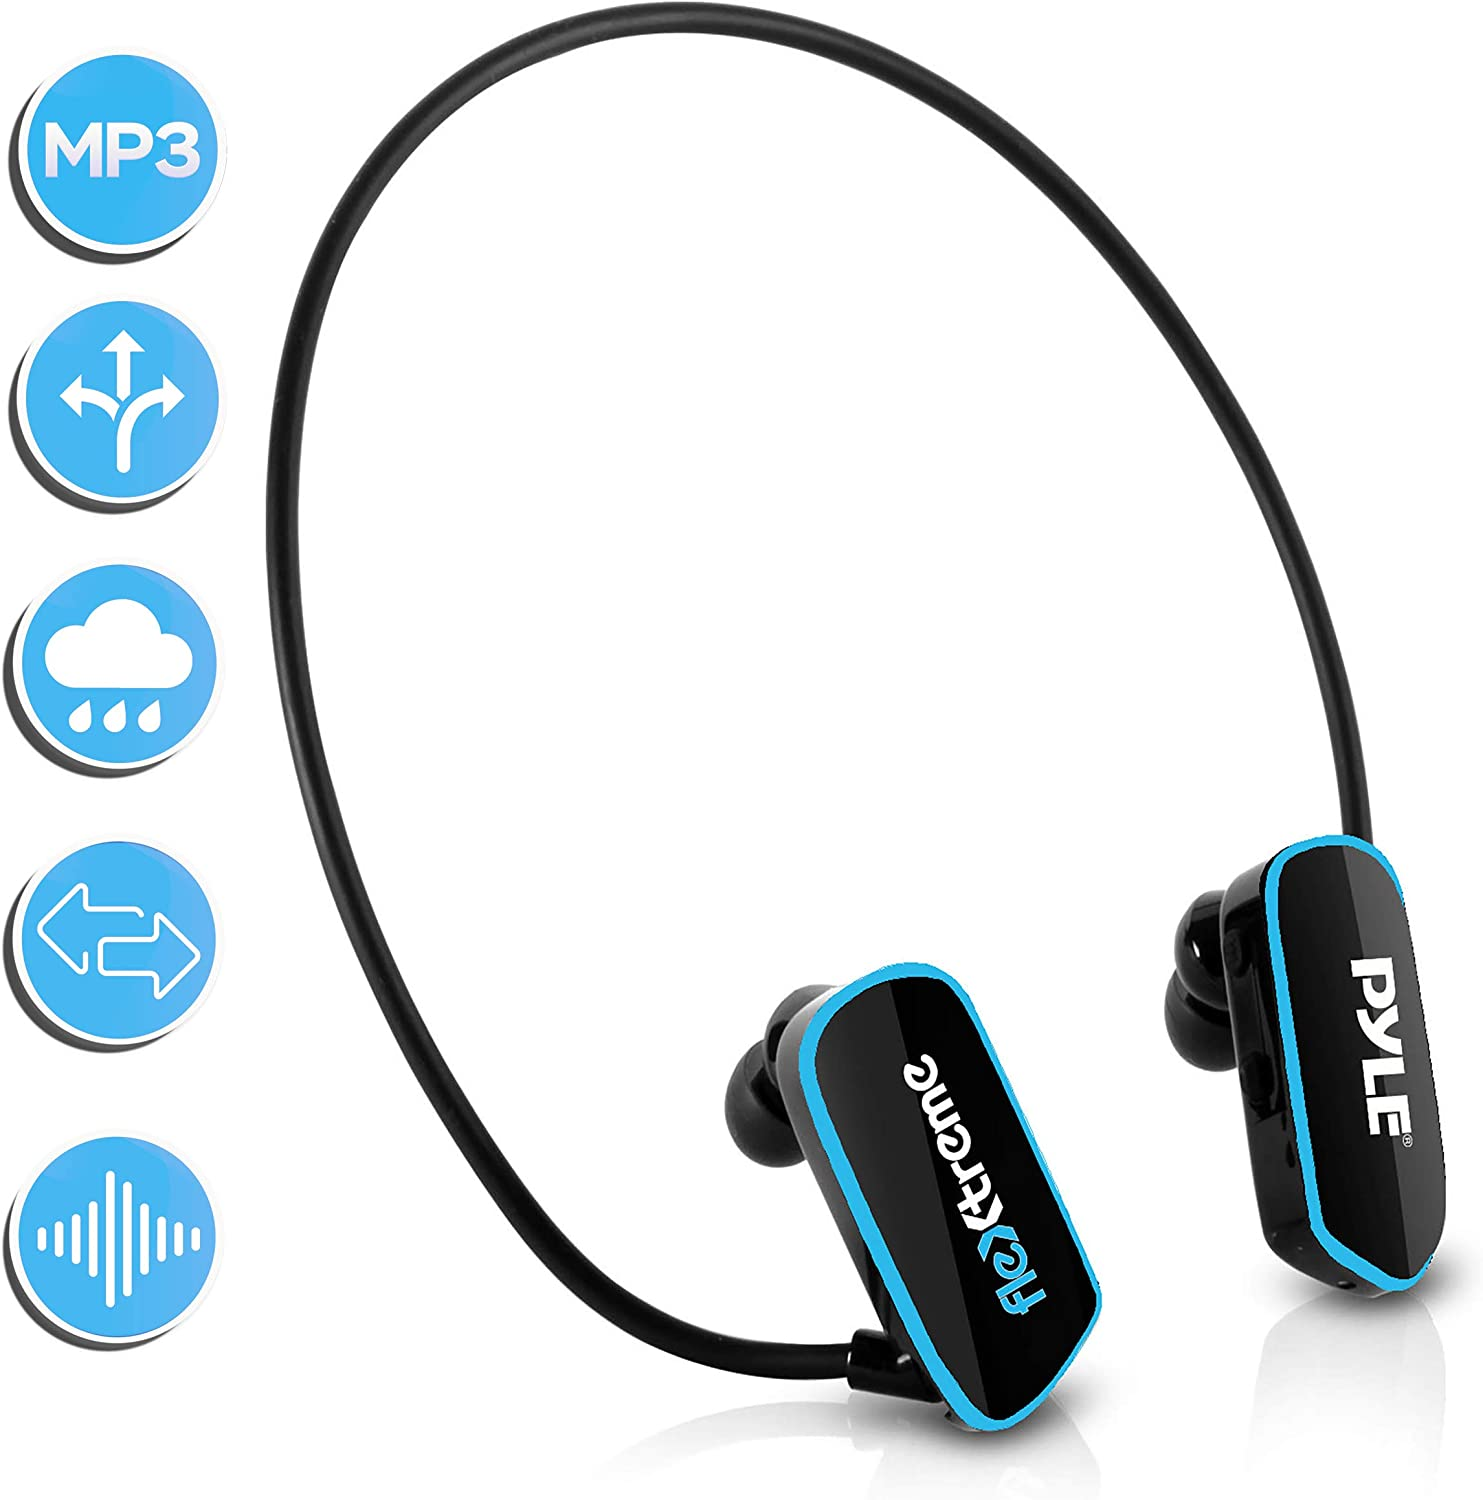 Waterproof MP3 Player Swim HeadphoneSubmersible IPX8 Flexible WrapAround Style Headphones Builtin Rechargeable Battery USB Connection w/ 4GB Flash Memory & Replacement EarbudsPyle PSWP6BK